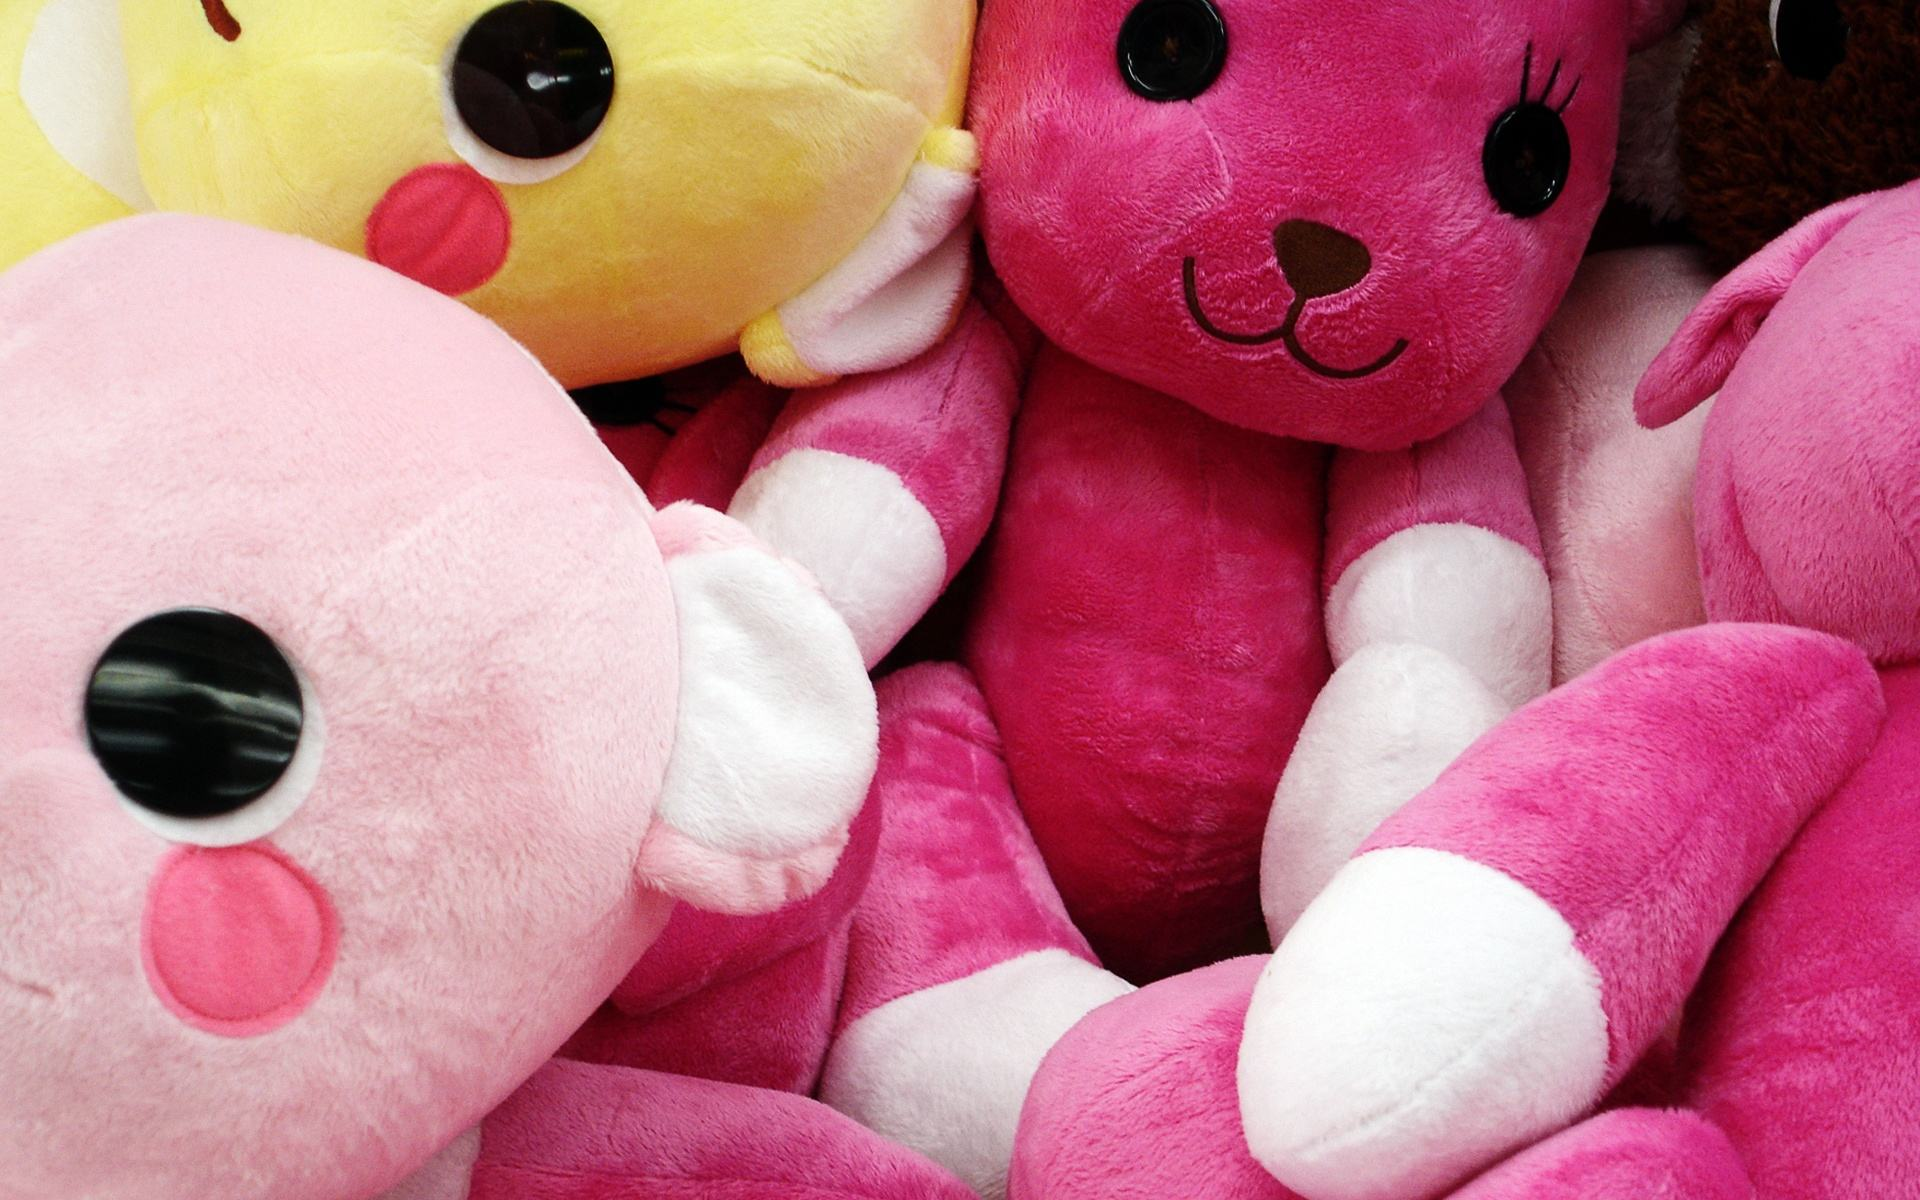 Pink hd wallpapers cute girly backgrounds high definition amazing download voltagebd Image collections